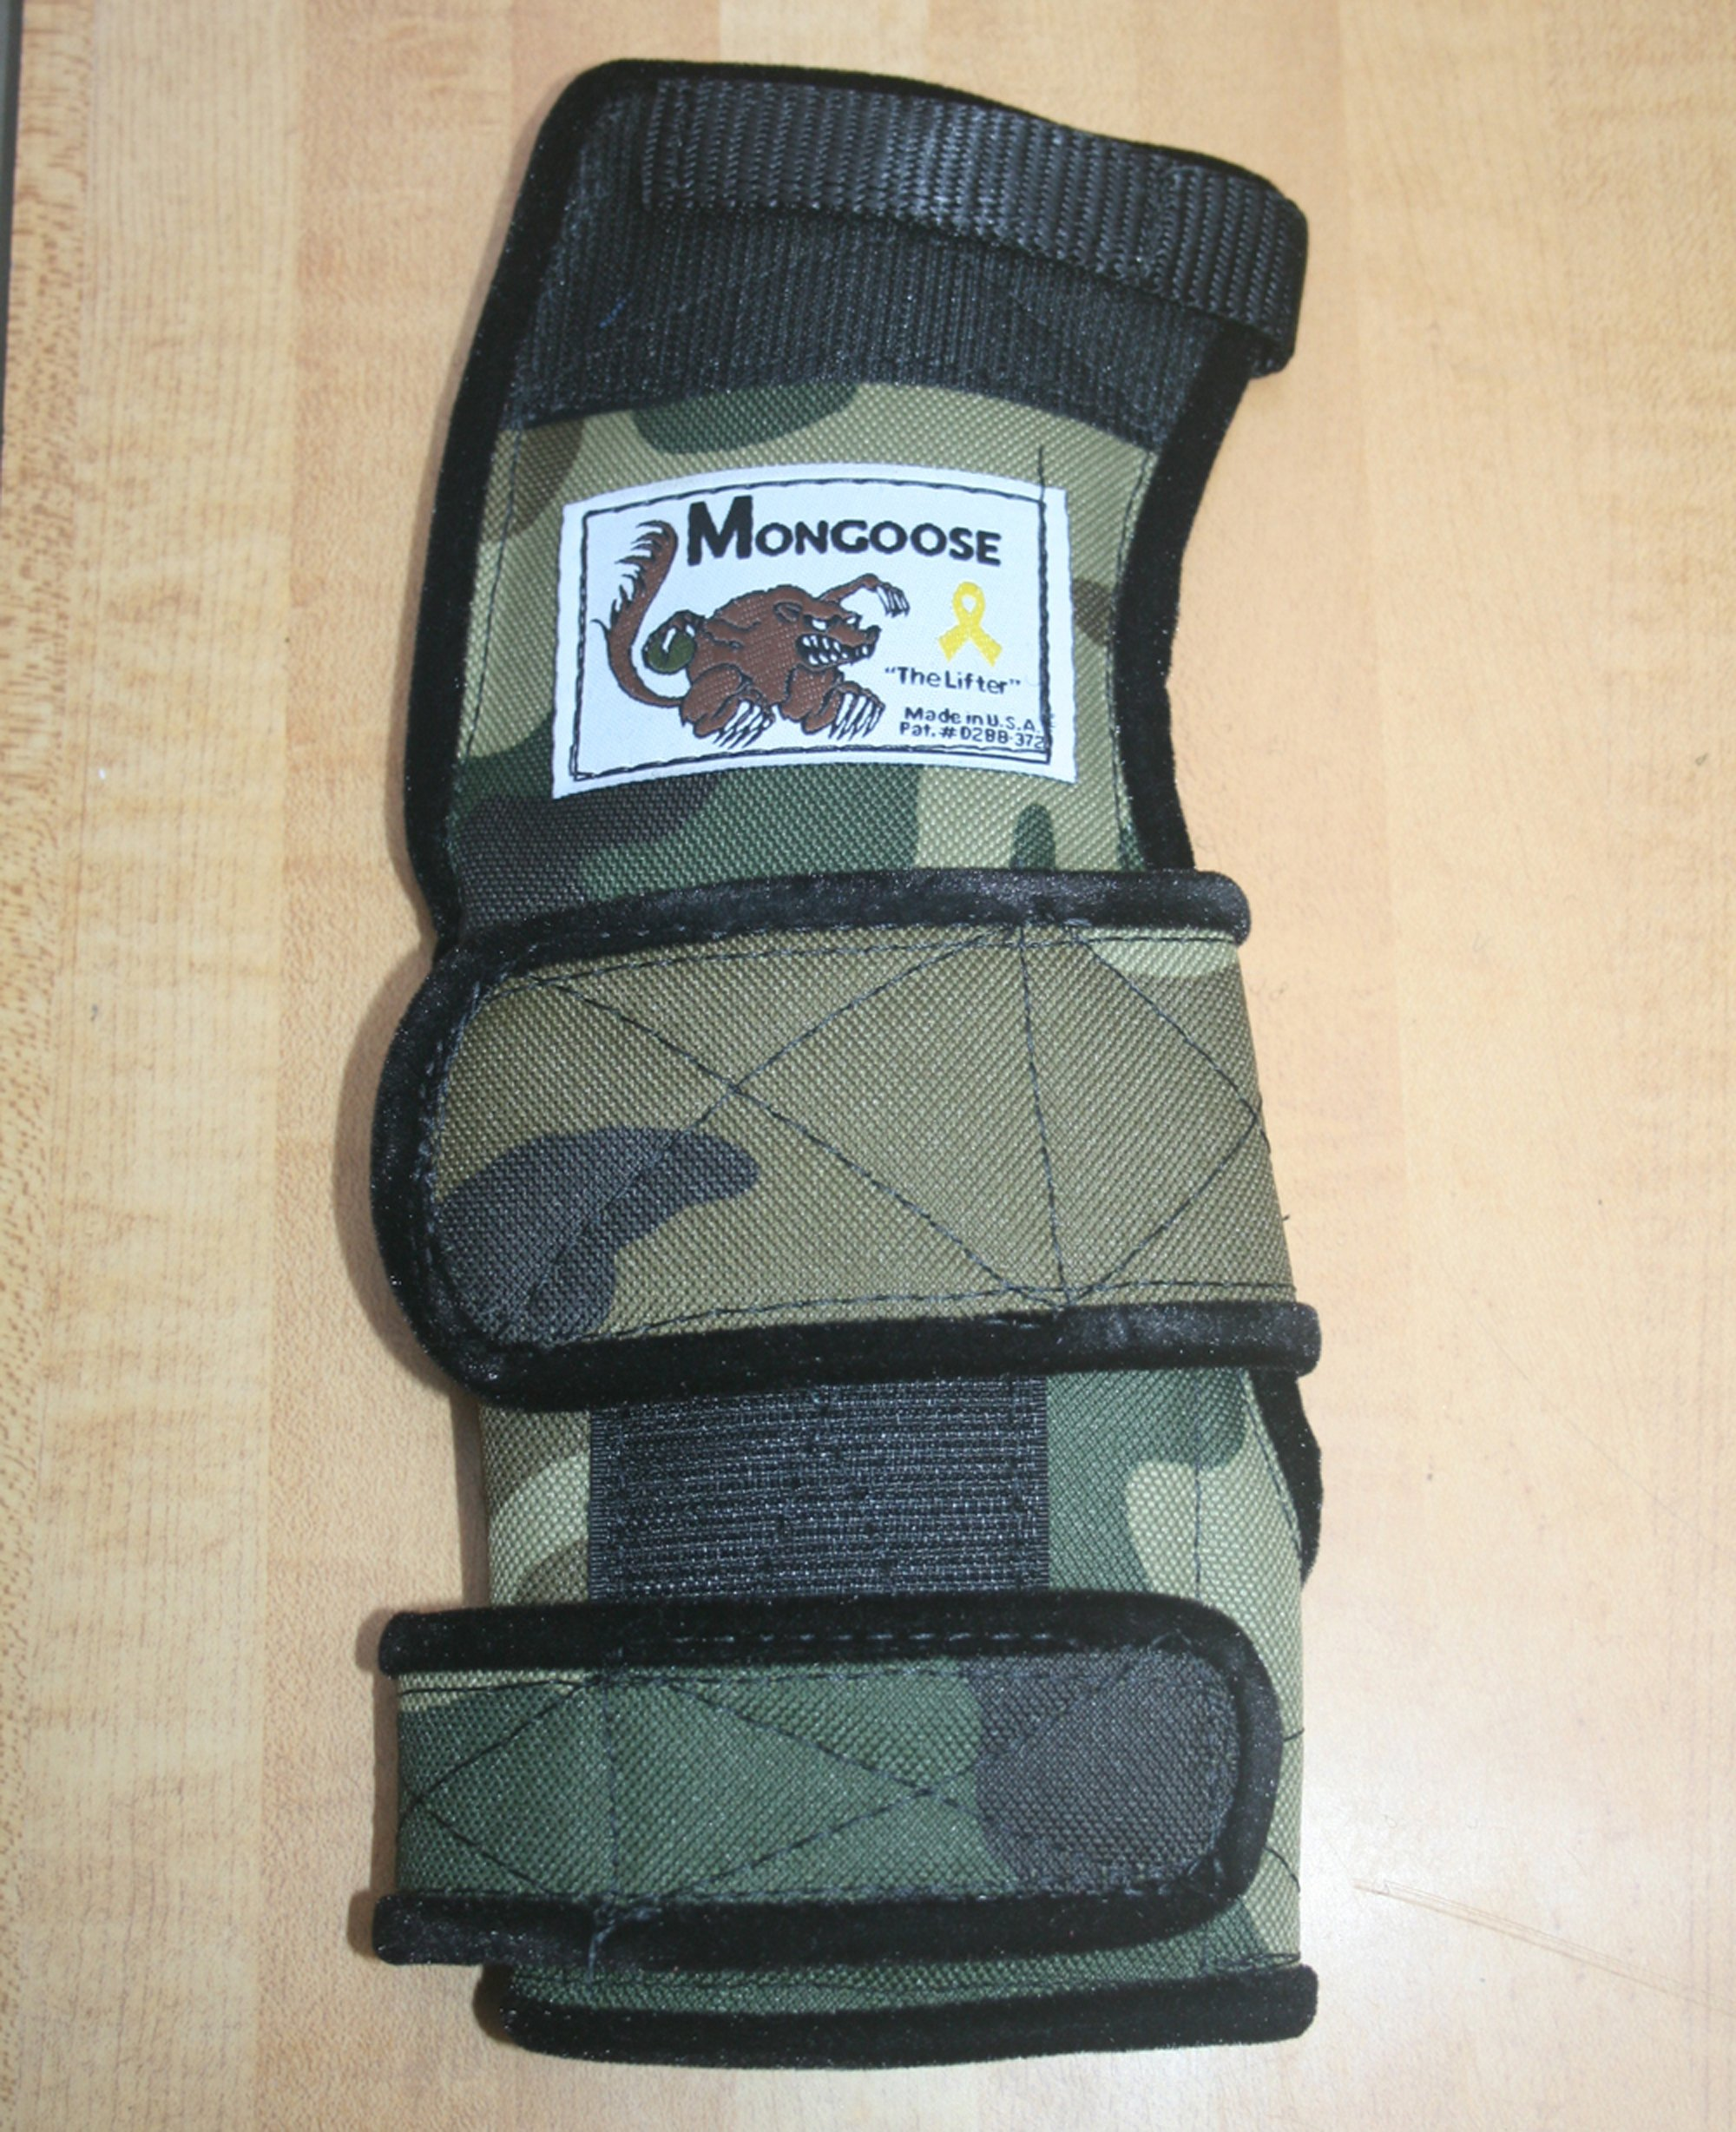 Mongoose ''Lifter Bowling Wrist Support left Hand, Large, Camo by Mongoose